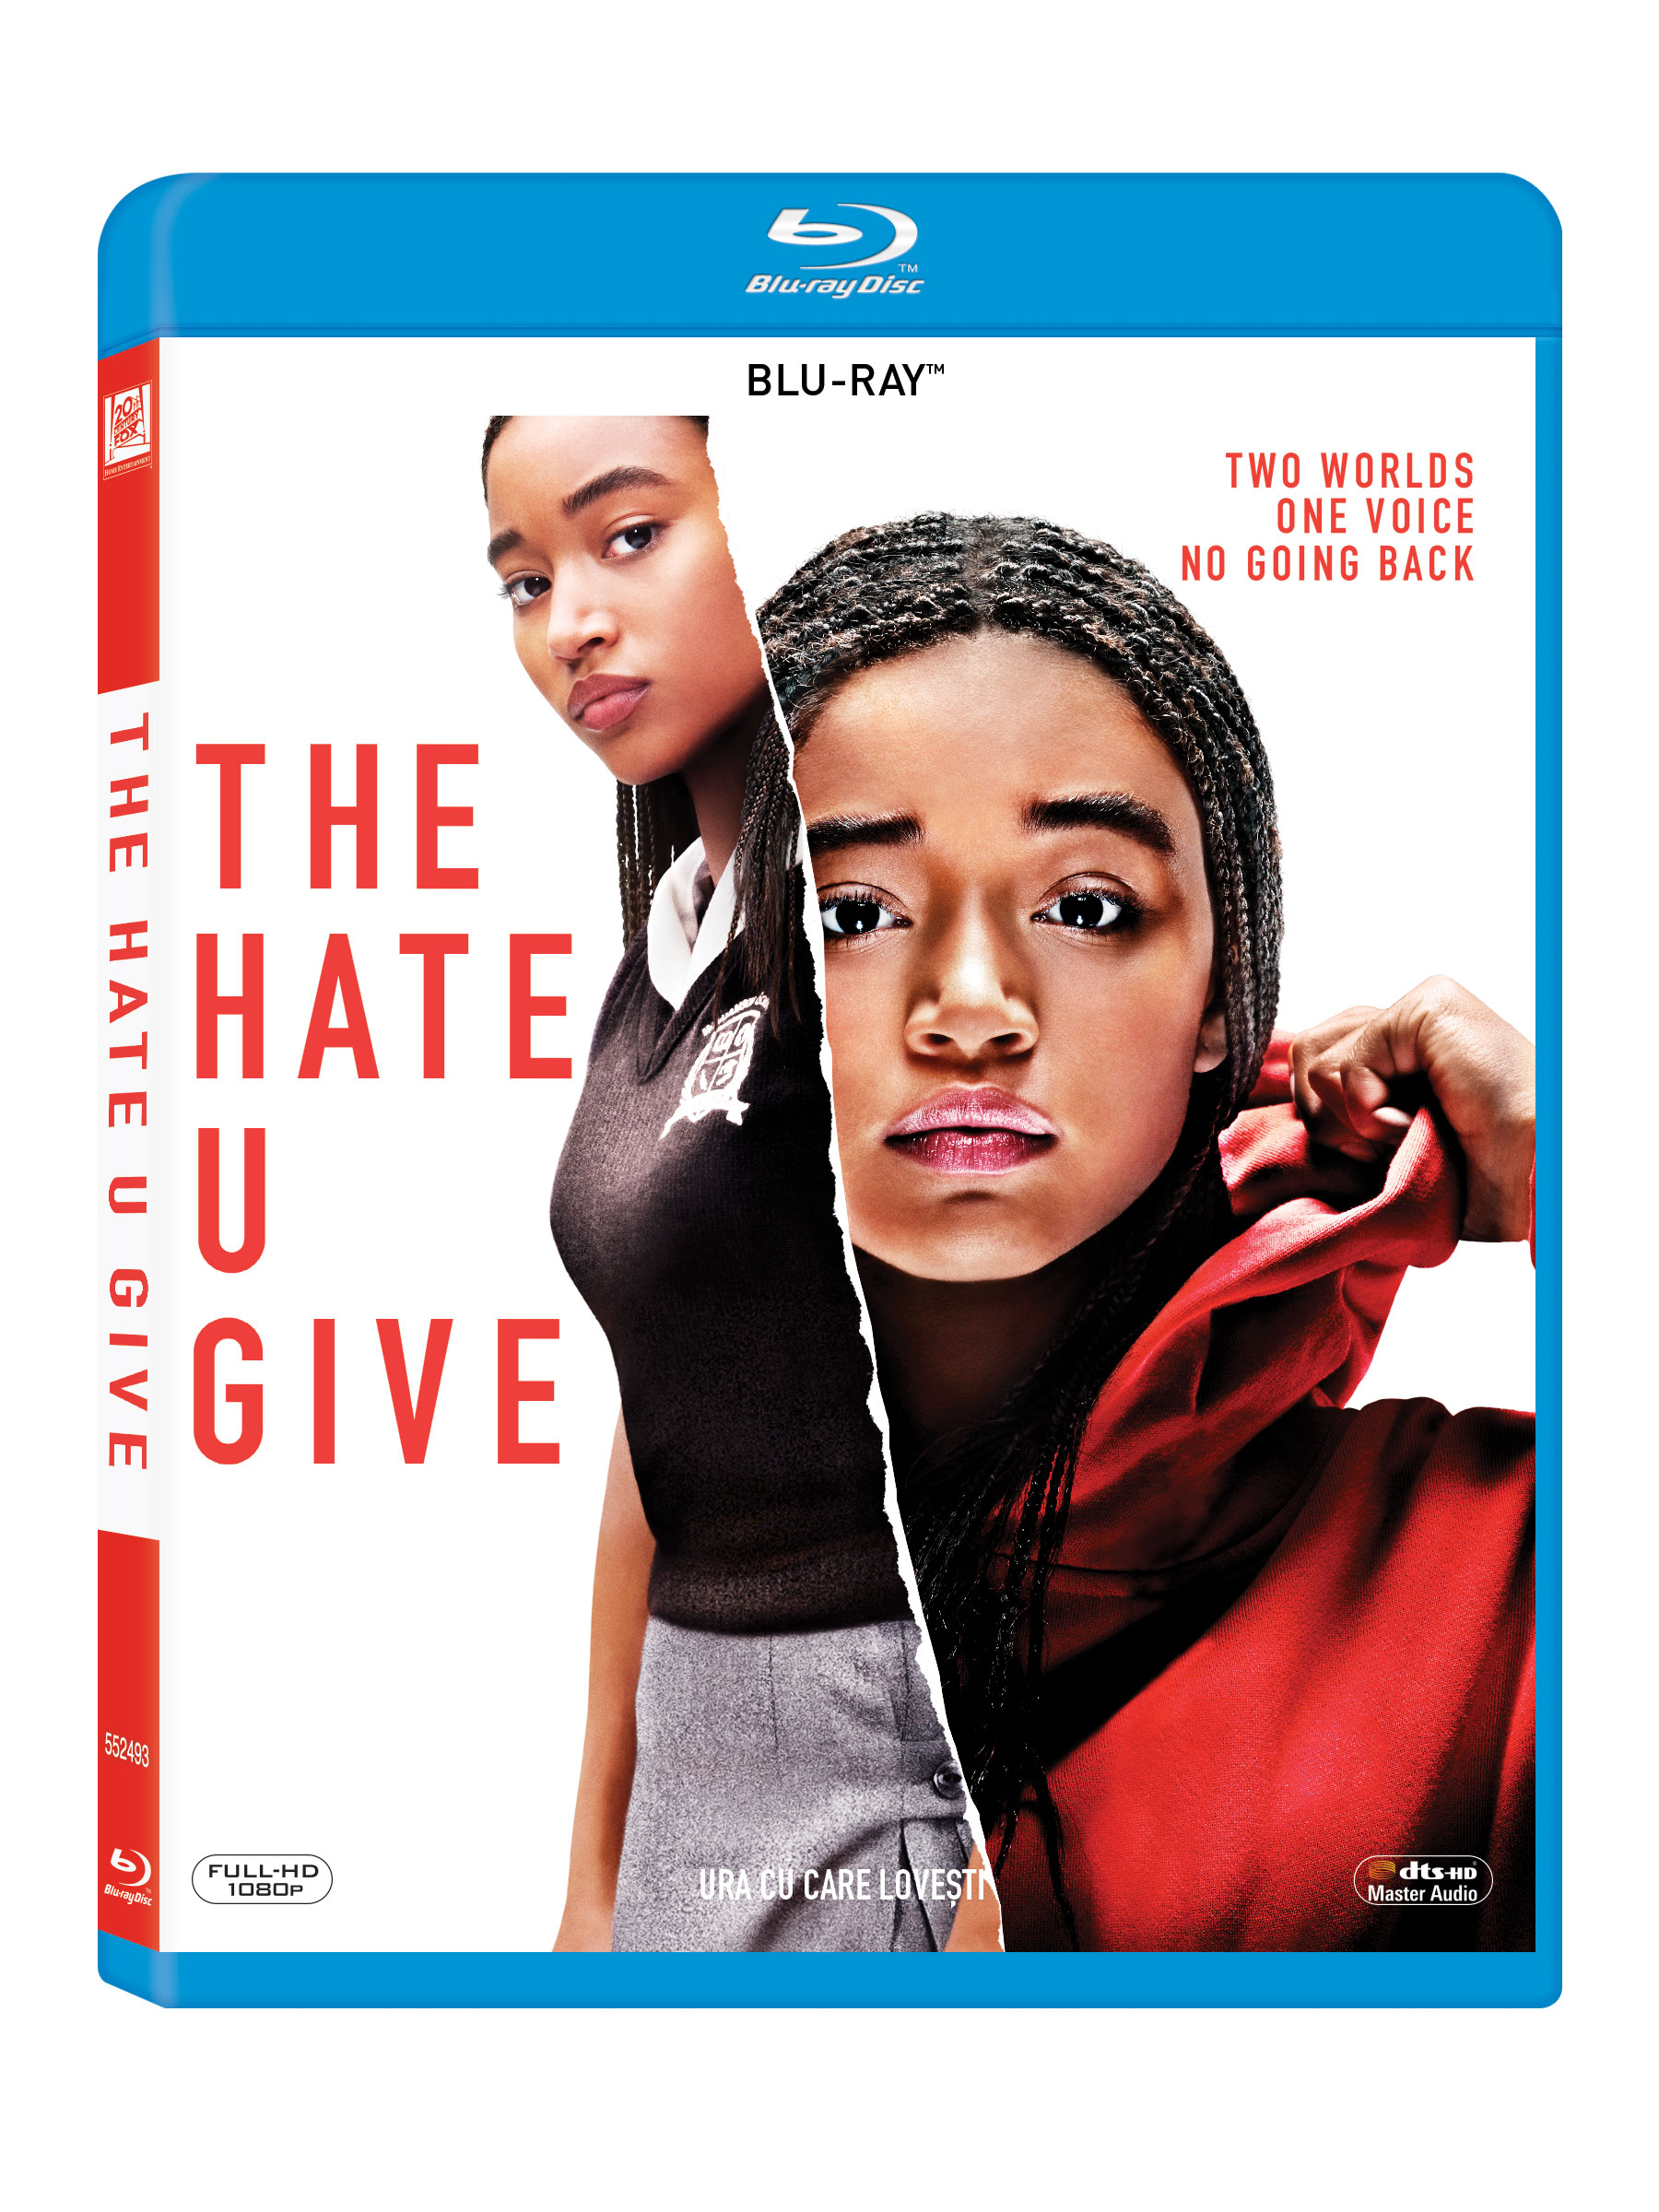 Ura cu care lovesti / The hate you give (Blu-Ray Disc) thumbnail